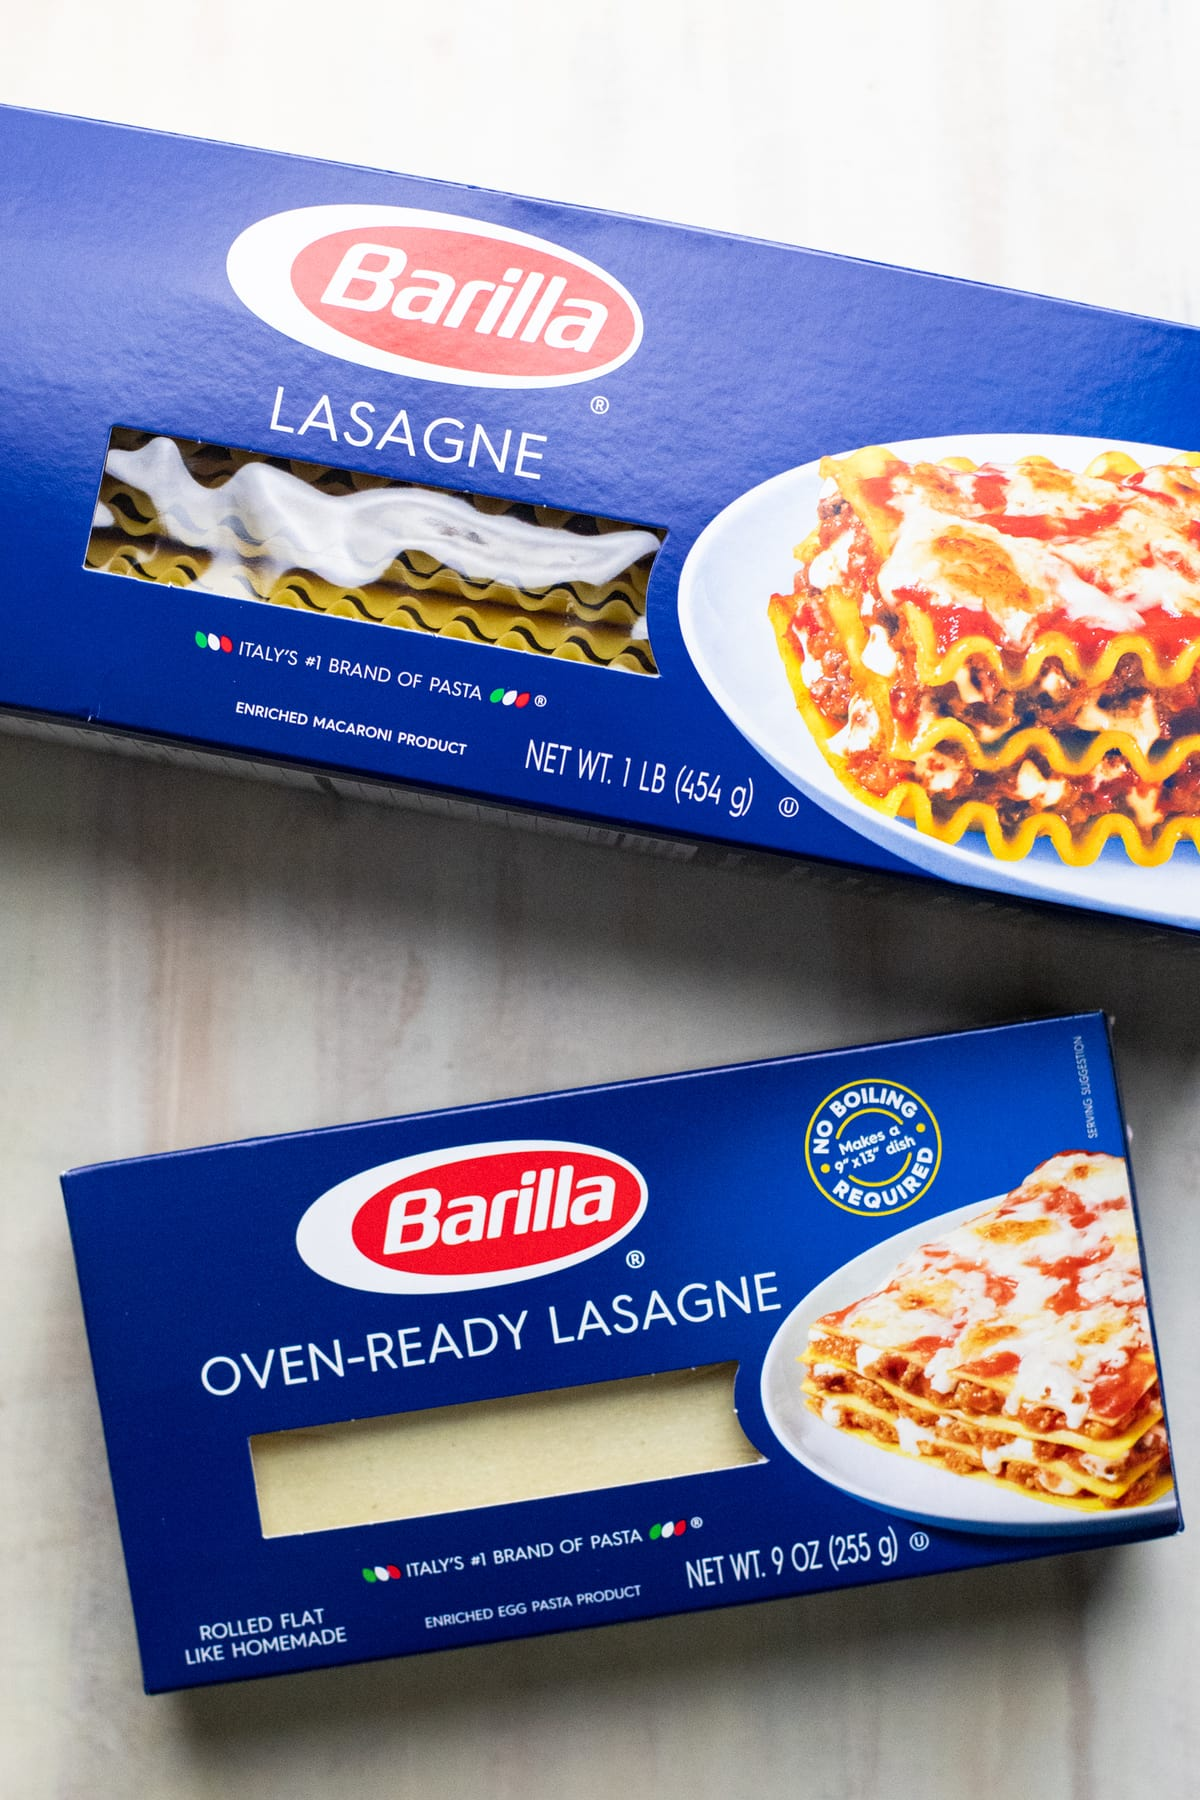 Blue boxes of lasagna noodle packages on white background.